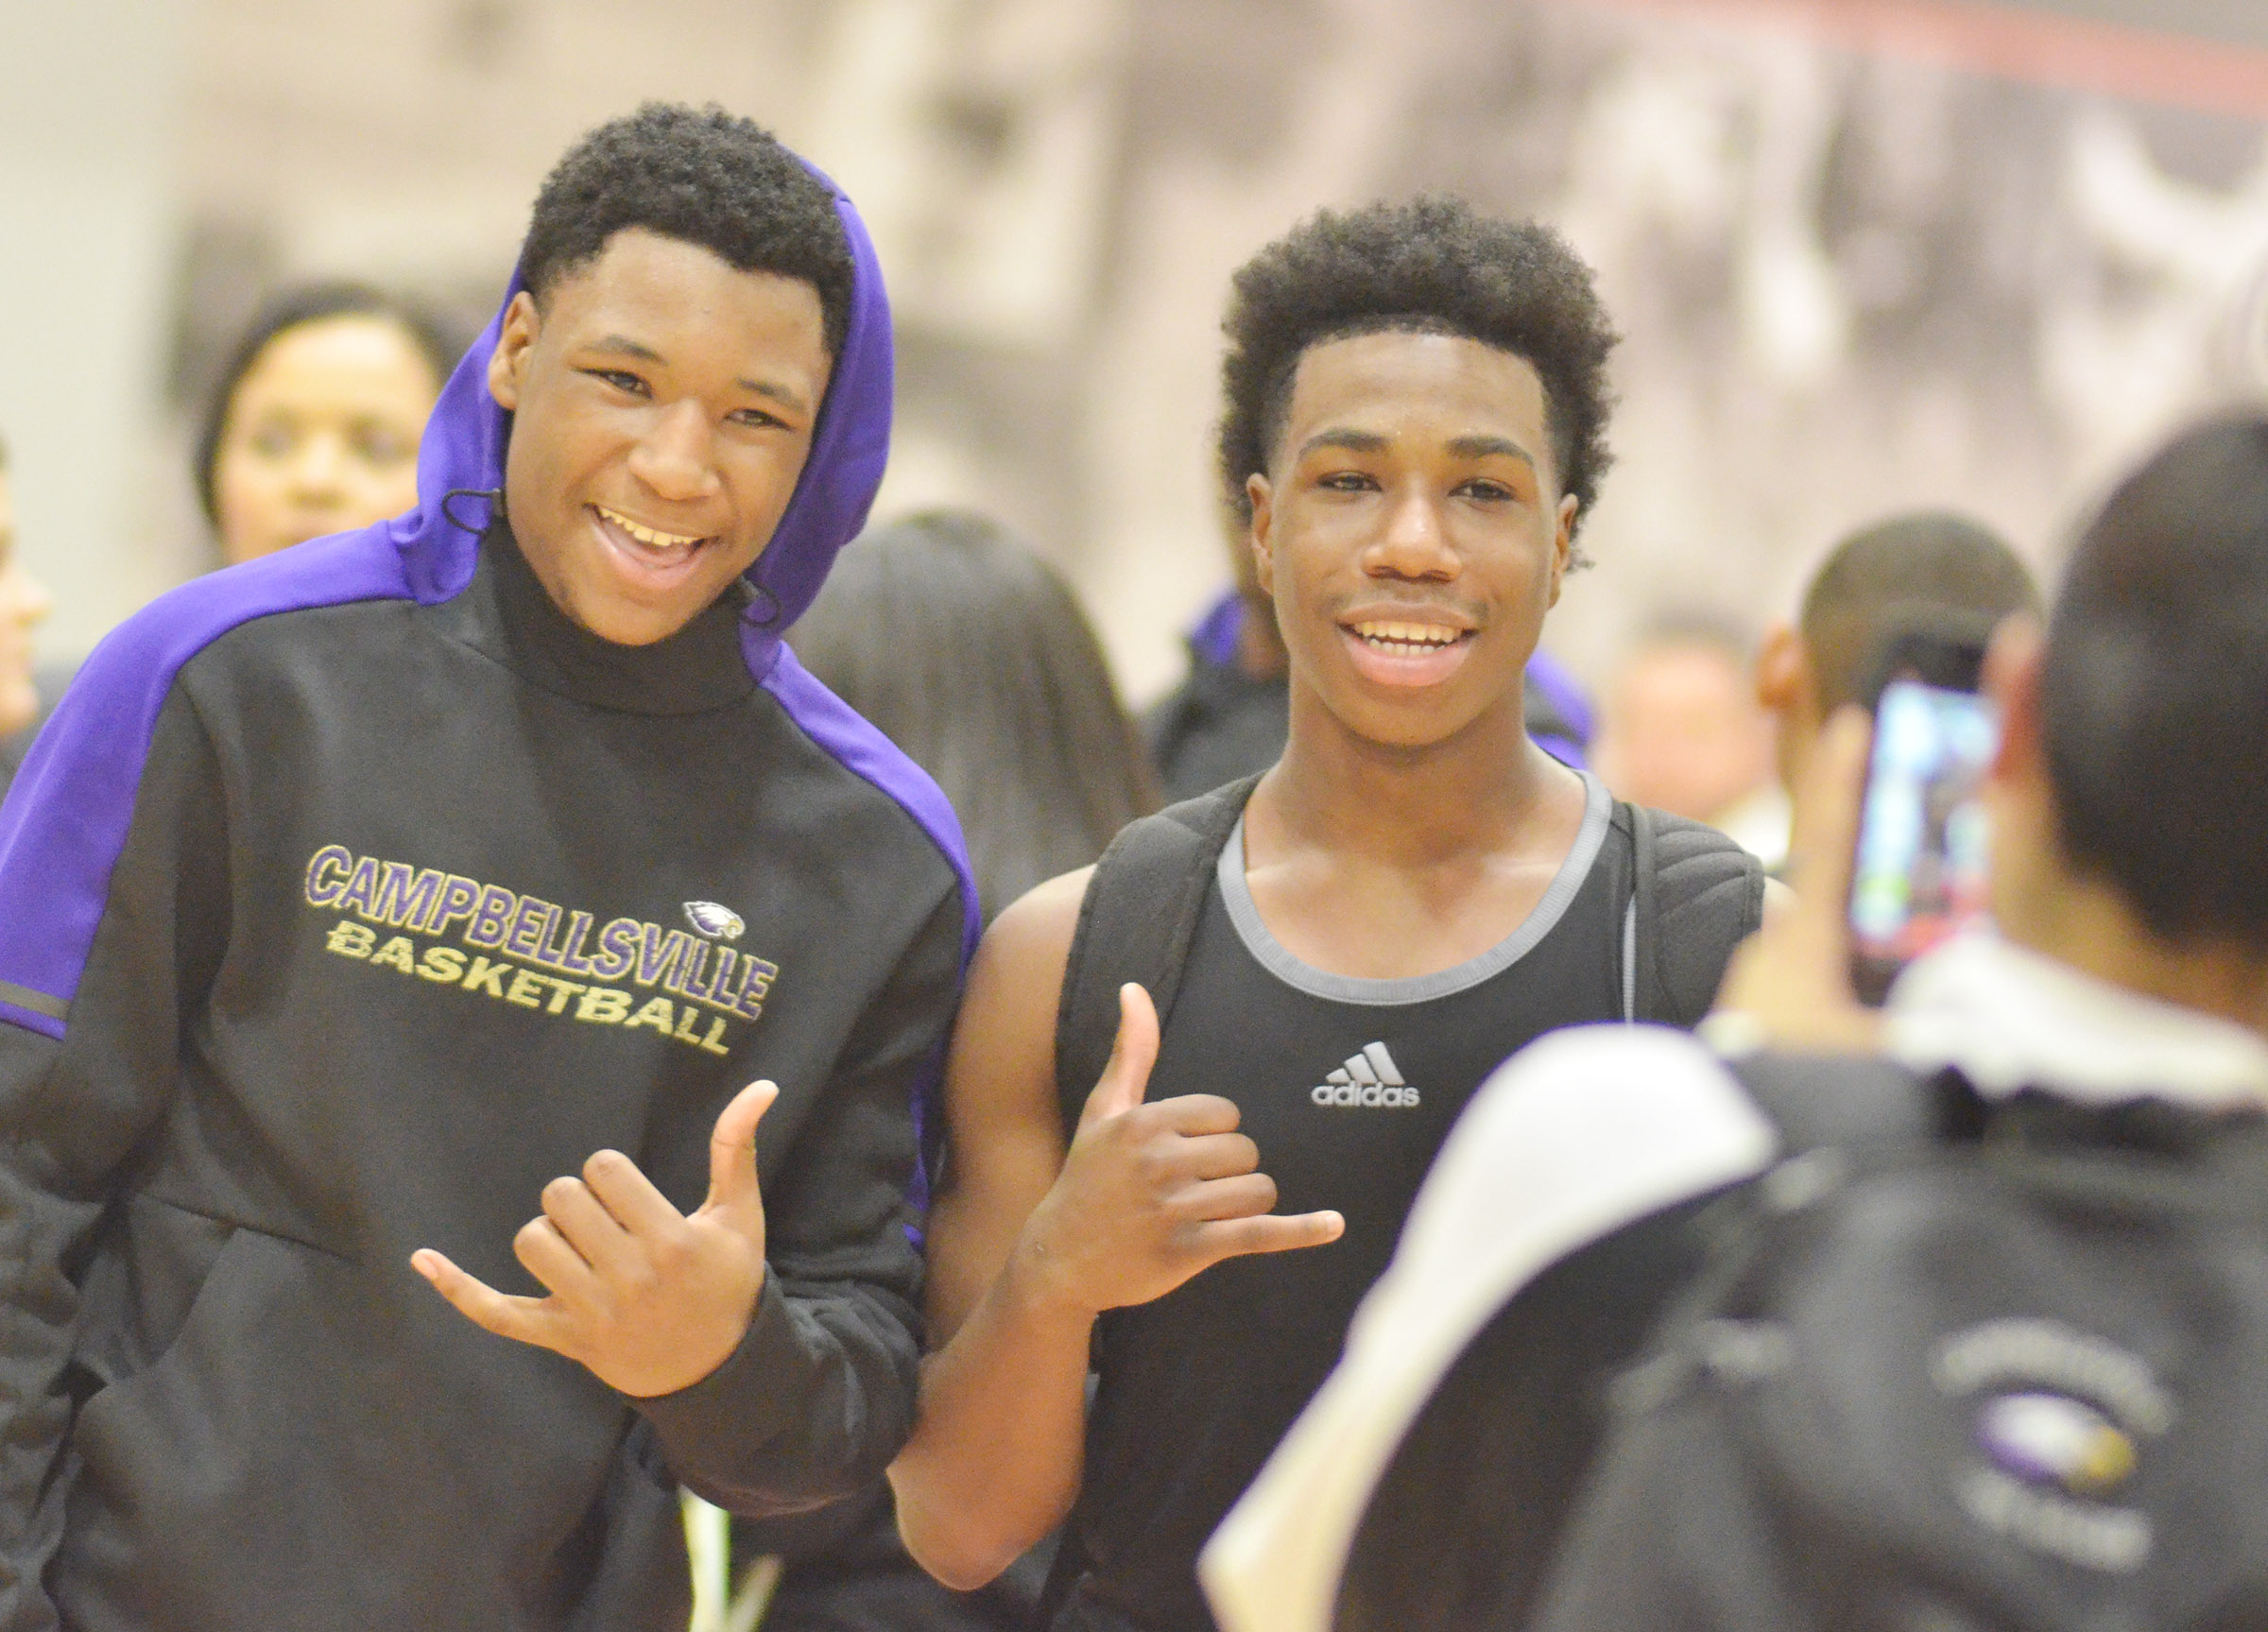 CHS junior Taj Sanders, at left, and sophomore Malachi Corley smile for the camera.